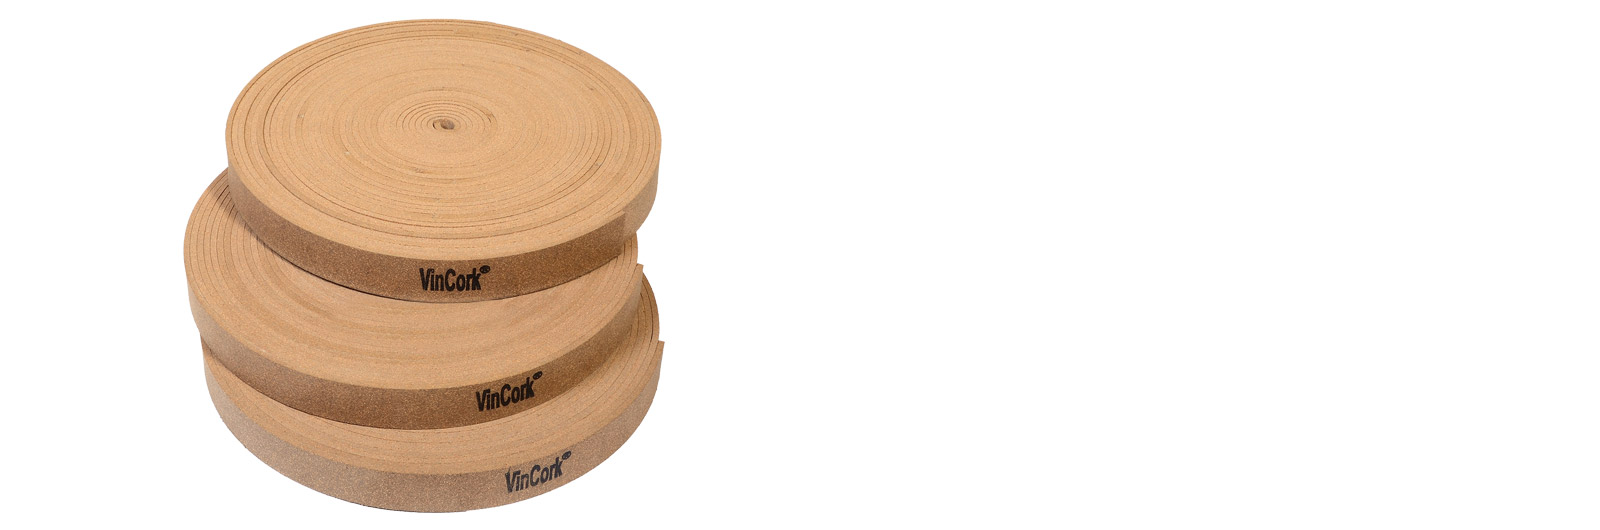 Rubberised cork Strips